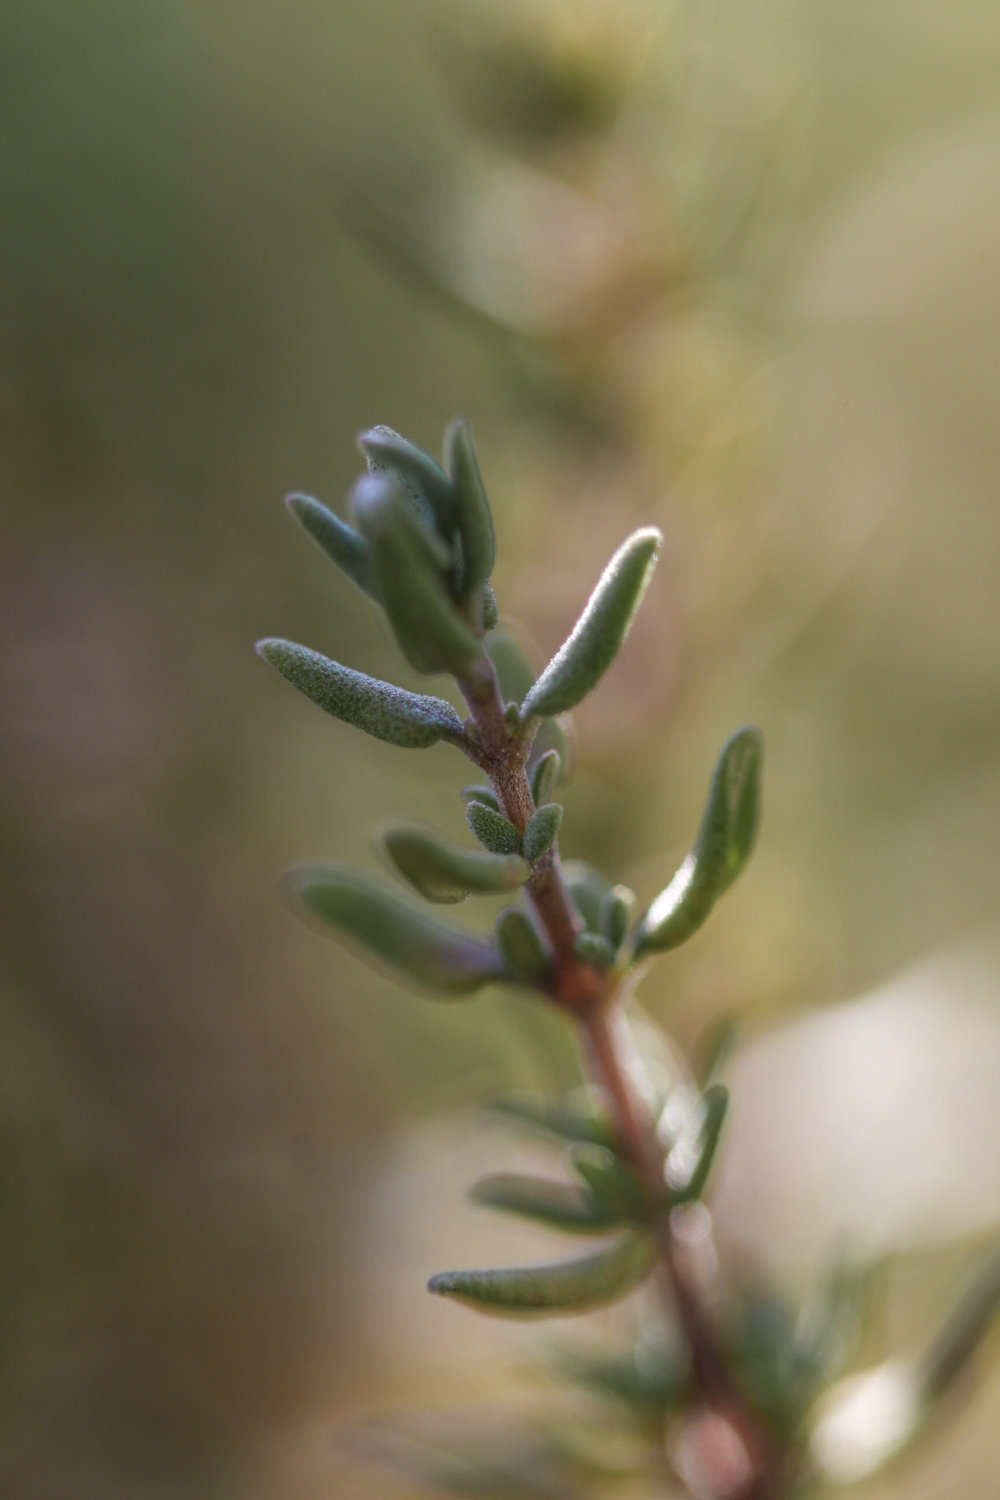 Thyme sprig. I love to discover beautiful details in common plants through my macro lens.